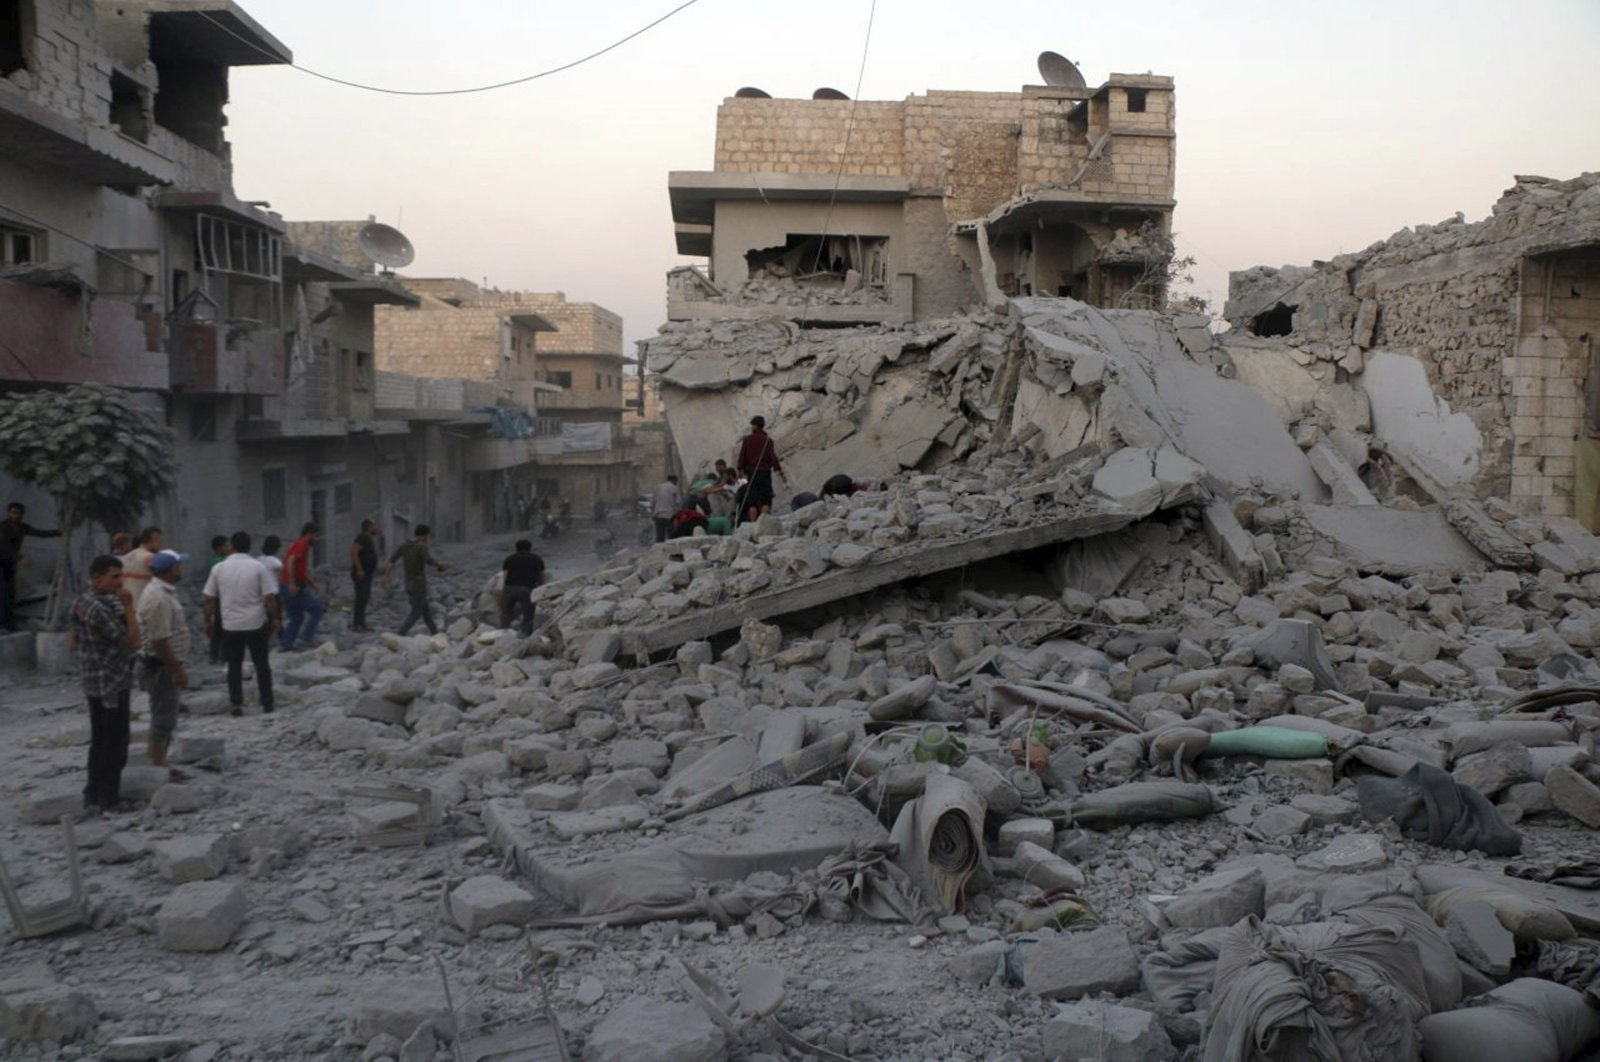 People searching for victims under the rubble of destroyed buildings that was hit by Assad regime's airstrikes in the northern town of Maaret al-Numan, in Idlib province, Syria, Aug. 28, 2019. (AP Photo)